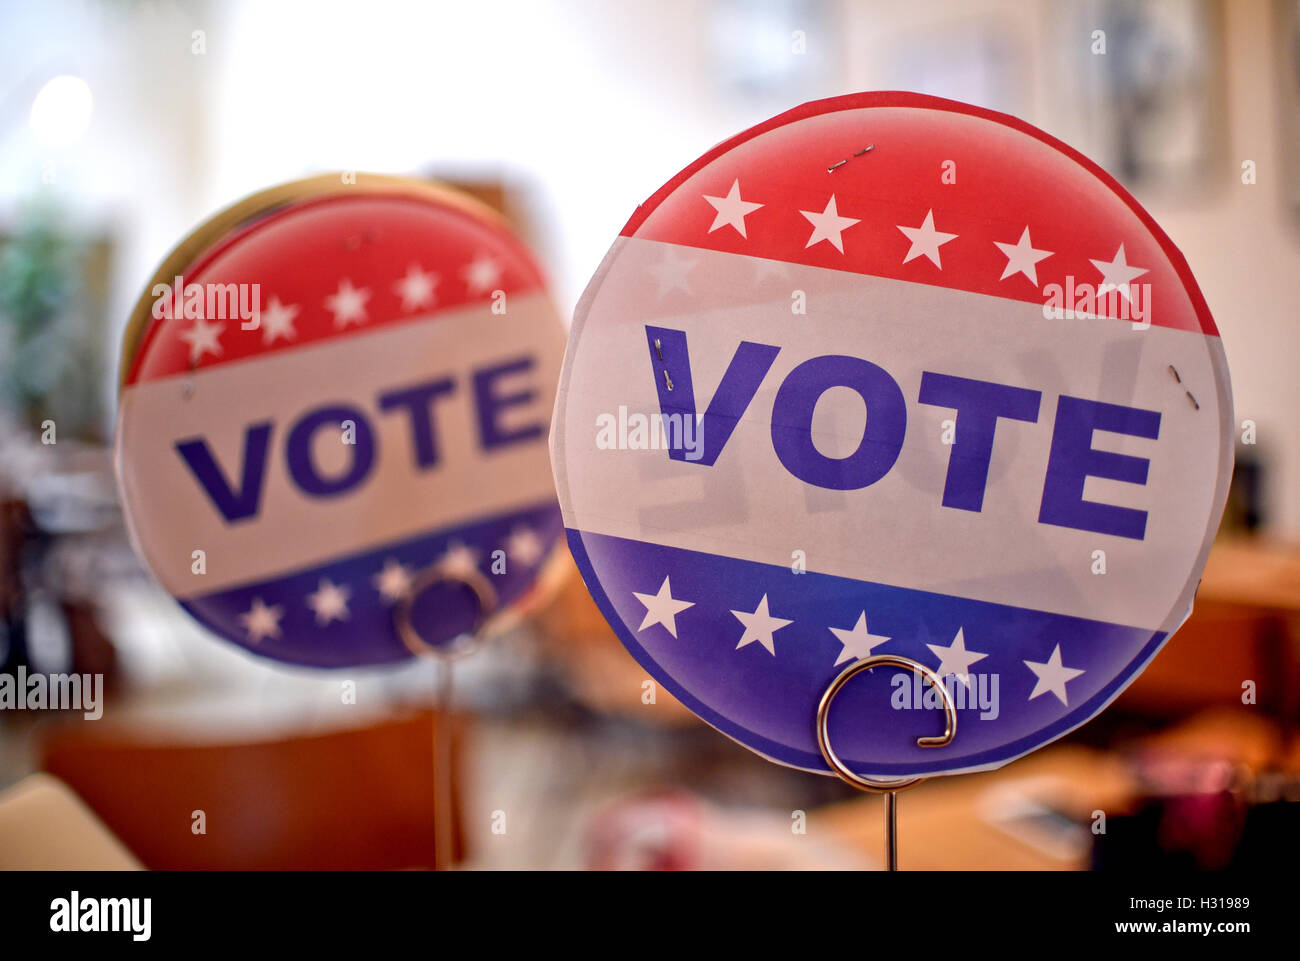 Berlin, Germany. 30th Sep, 2016. Signs reading 'Vote' can be seen at Hallesches Haus in Berlin, Germany, - Stock Image